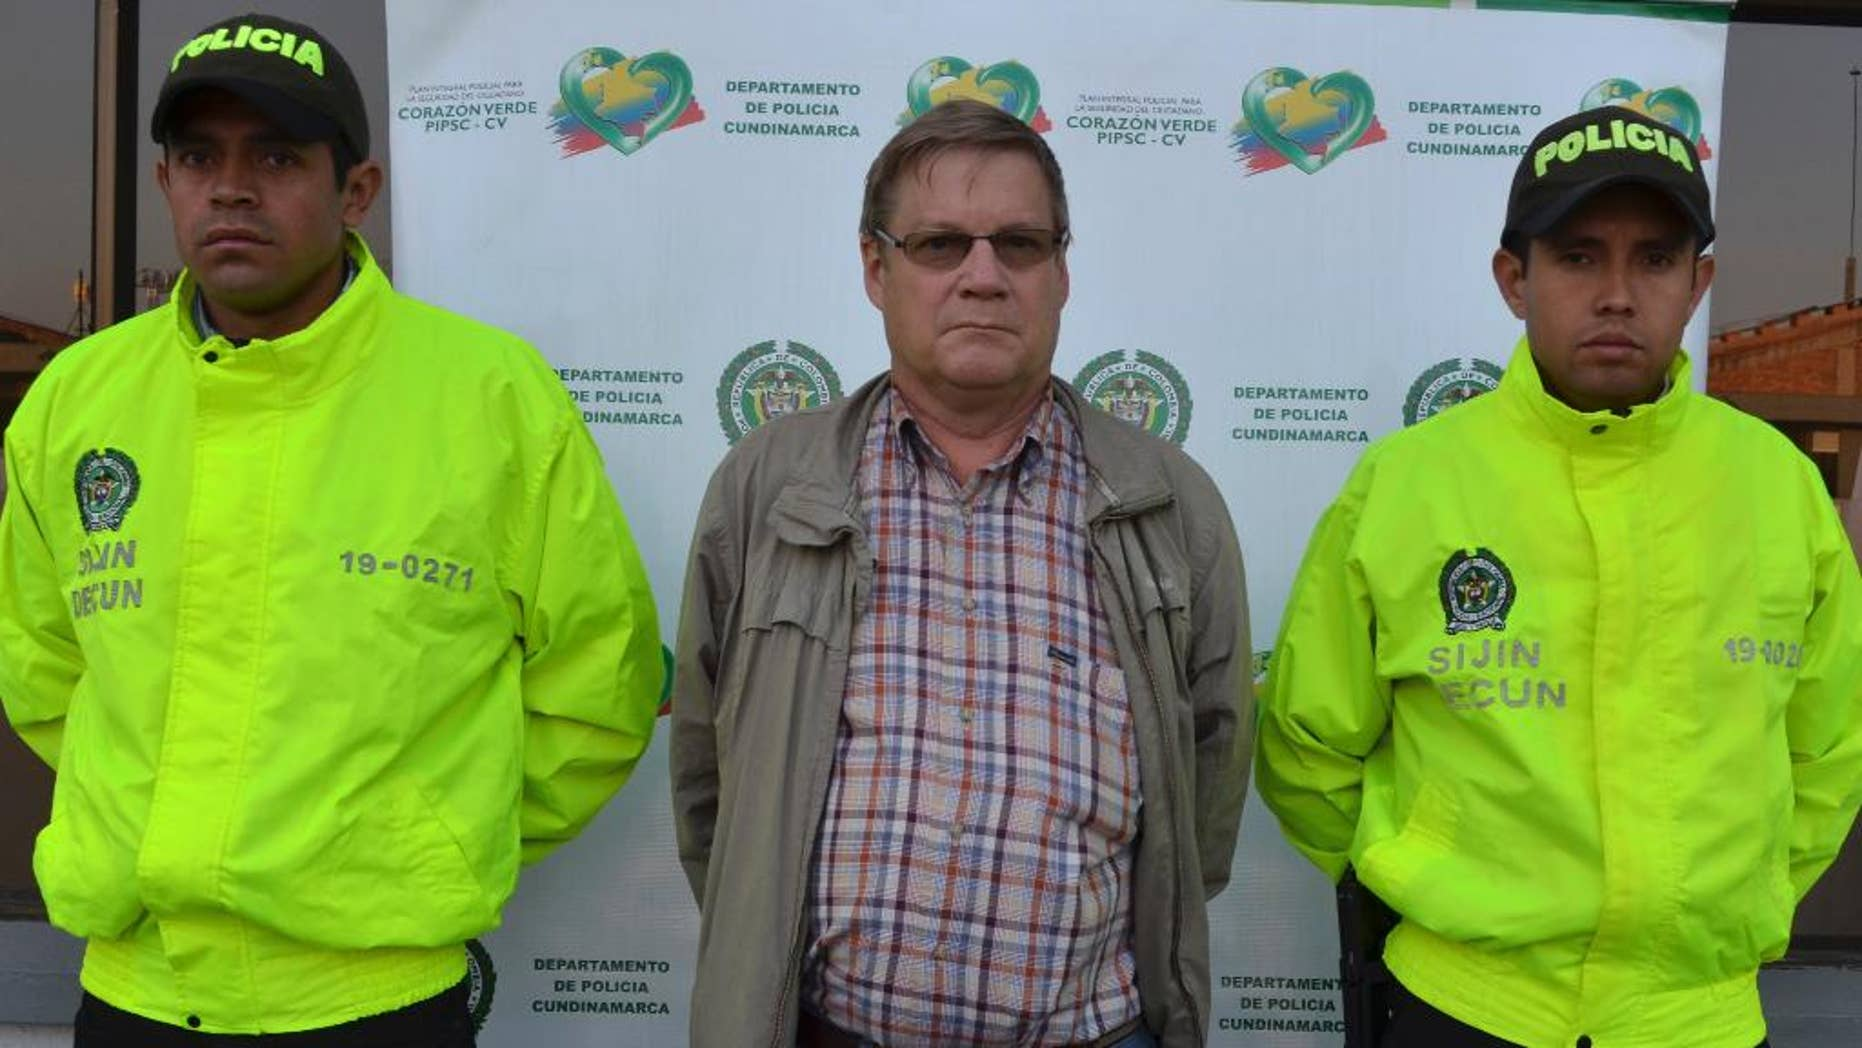 This photo released by Colombia's National Police shows American citizen Martin Stendal flanked by police officers at a police station in Bogota, Colombia, Thursday, Feb. 19, 2015. Police Col. Flavio Meza said that Stendal, a 59-year old native of Minnesota, surrendered Wednesday night to face an arrest warrant charging him with supporting terrorism and collaborating with the Revolutionary Armed Forces of Colombia rebel movement. Stendal says in a video posted online that he had been set up and that his trips into rebel territory to distribute Bibles and radios were only for ministering. (AP Photo/Colombia's National Police)